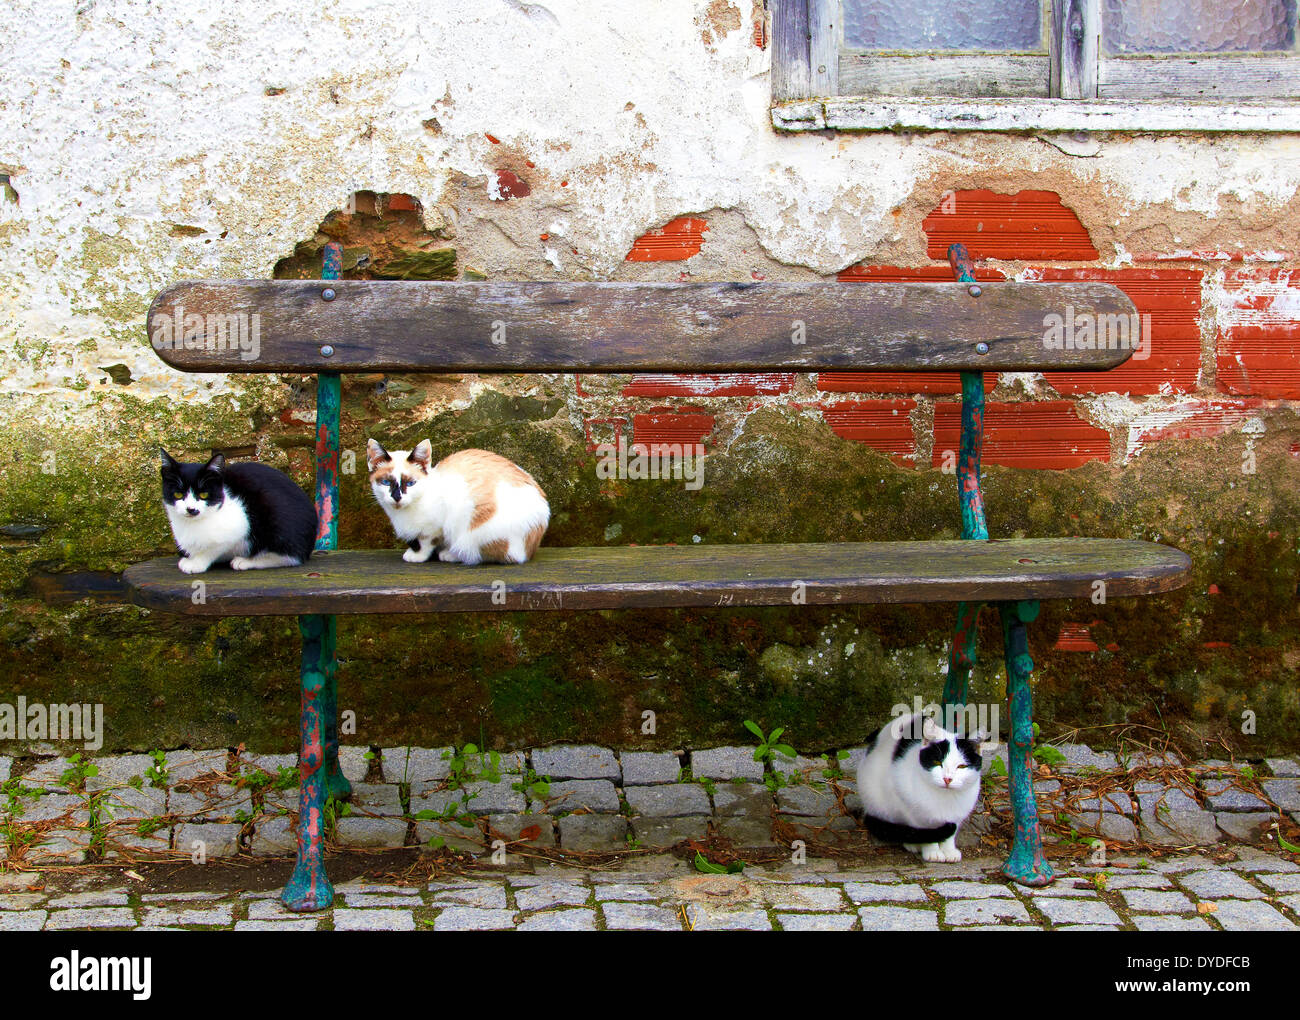 Three cats obligingly posed for the camera in a quite alleyway in a remote part of Northern Portugal. - Stock Image